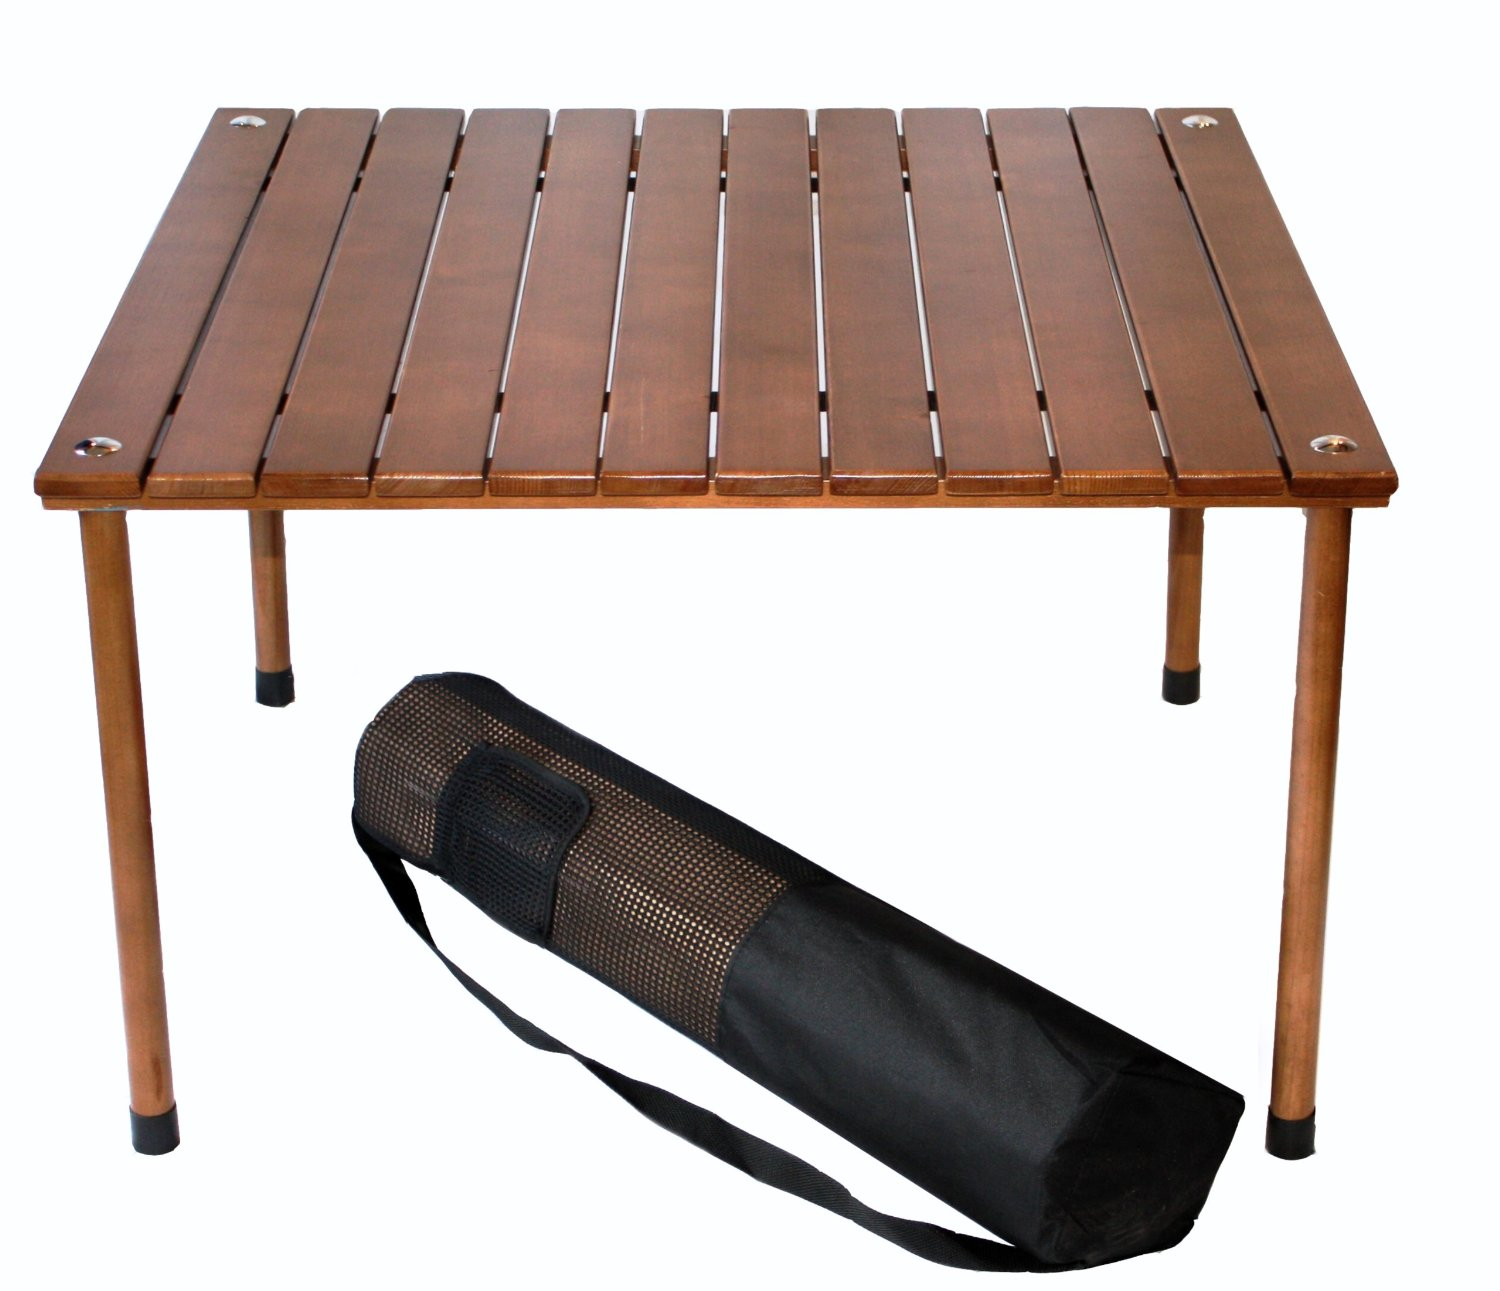 Delightful Outdoor Folding Wooden Picnic Table In A Bag,Outdoor Folding Table Camping  Table Folding Camping Equipment Table]   Buy Outdoor Folding Wooden Picnic  Table ...